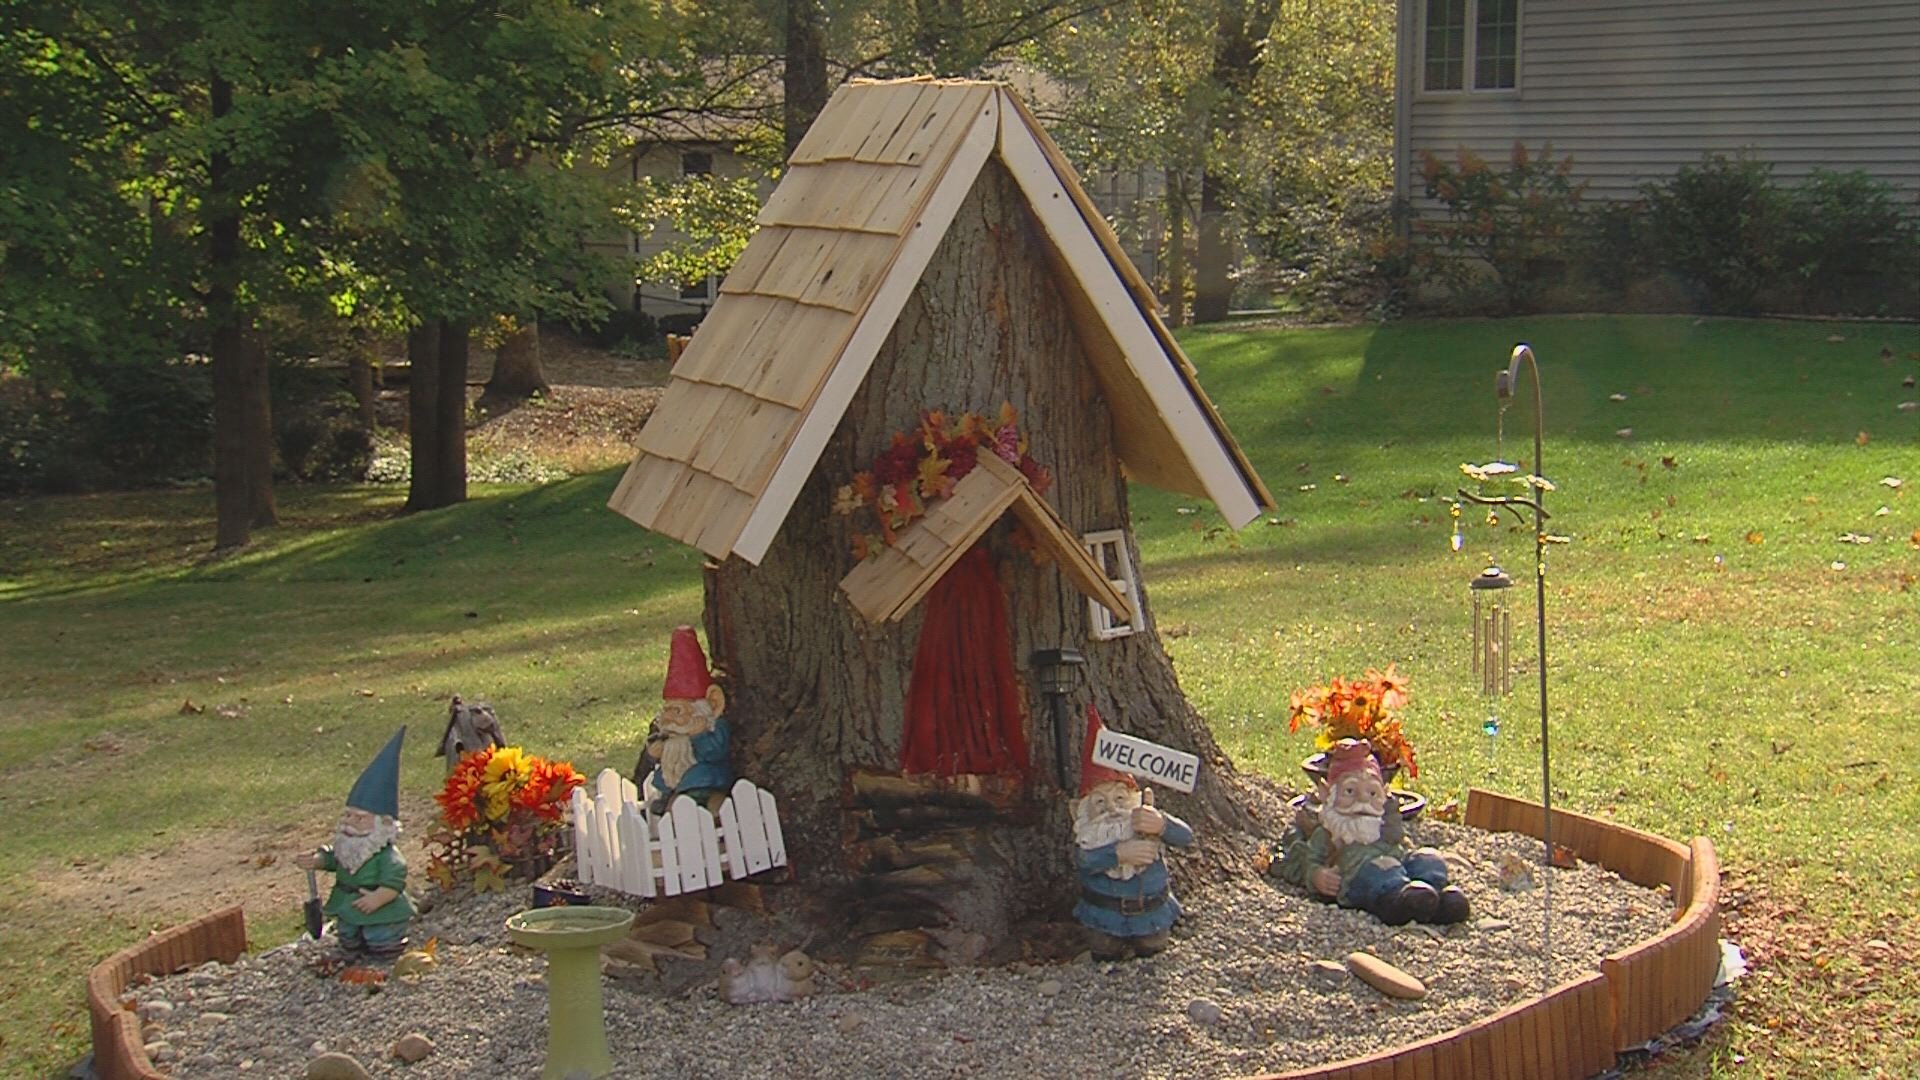 Tree stump house - Woman Creates Gnome Home From Tree Stump